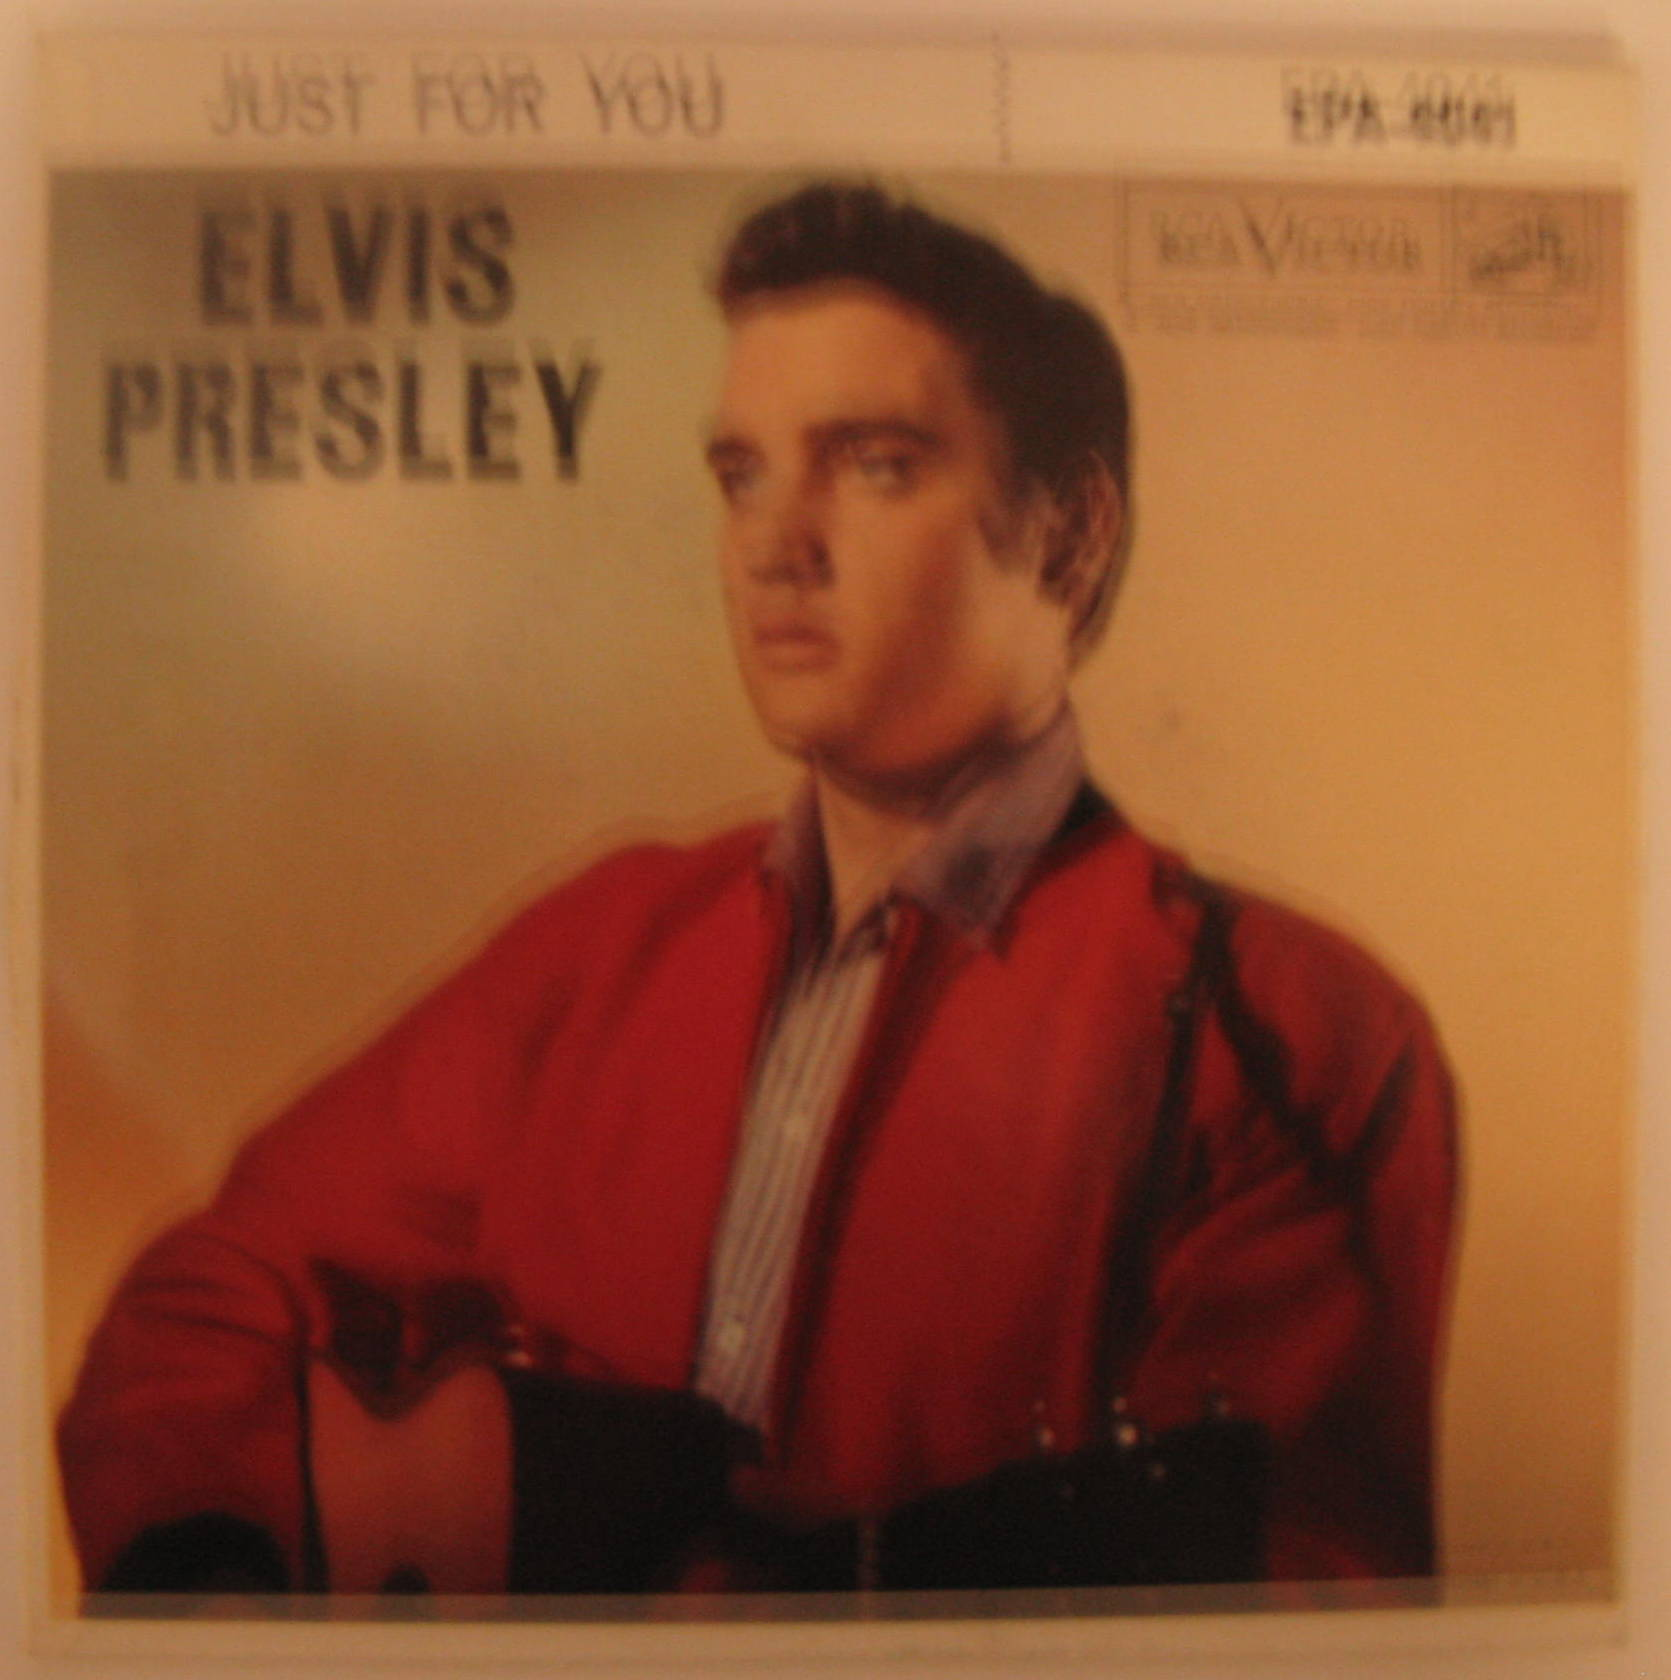 Just For You Ep - Elvis Presley